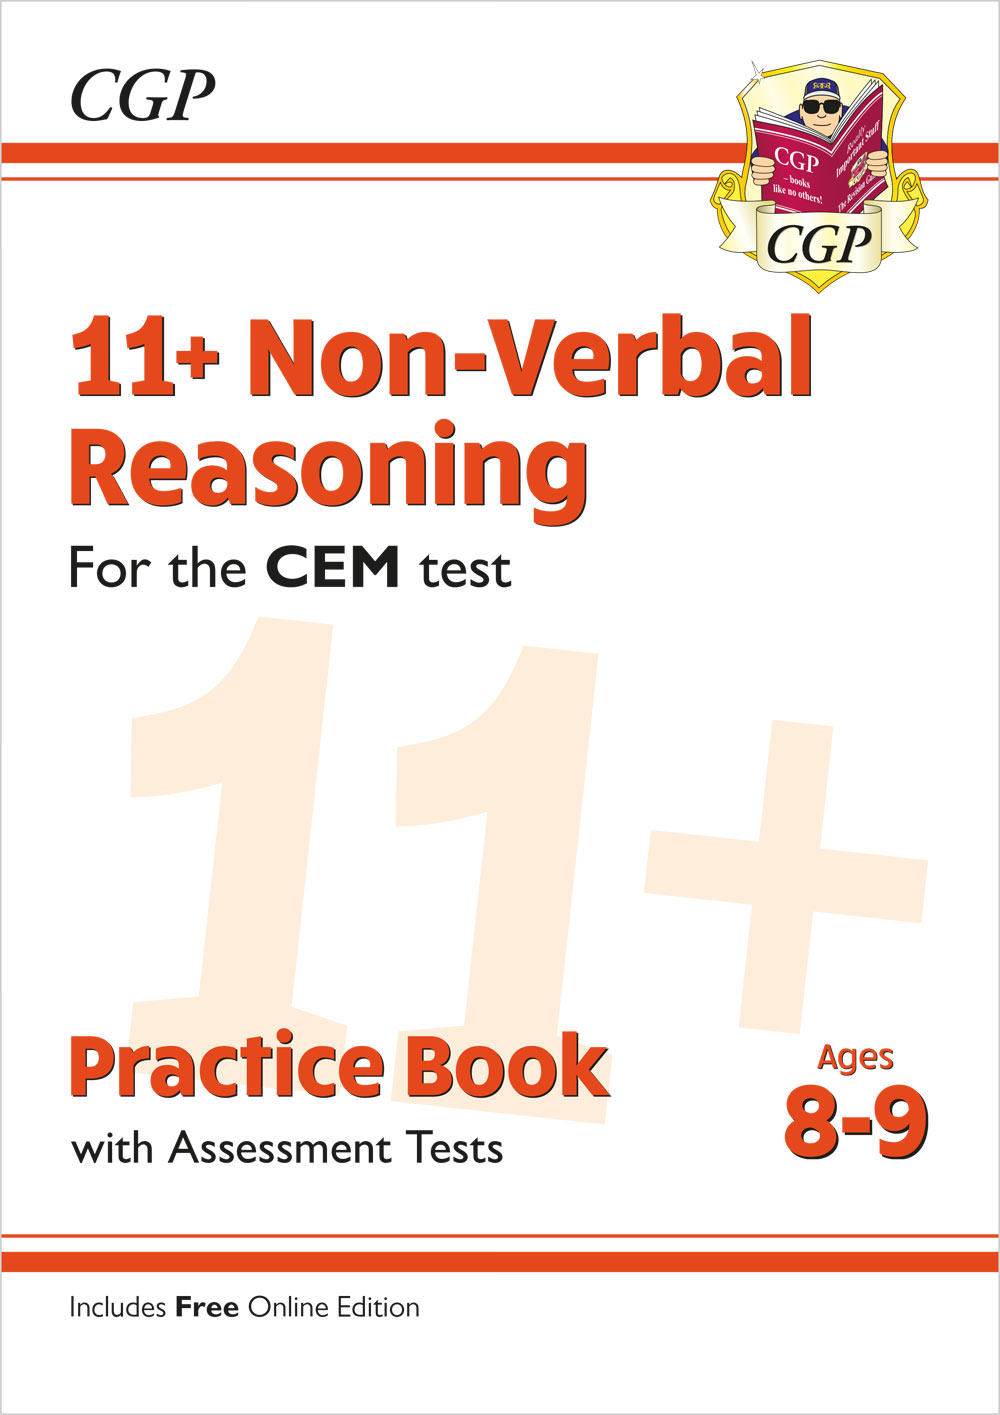 N4QDE2 - New 11+ CEM Non-Verbal Reasoning Practice Book & Assessment Tests - Ages 8-9 (with Online E